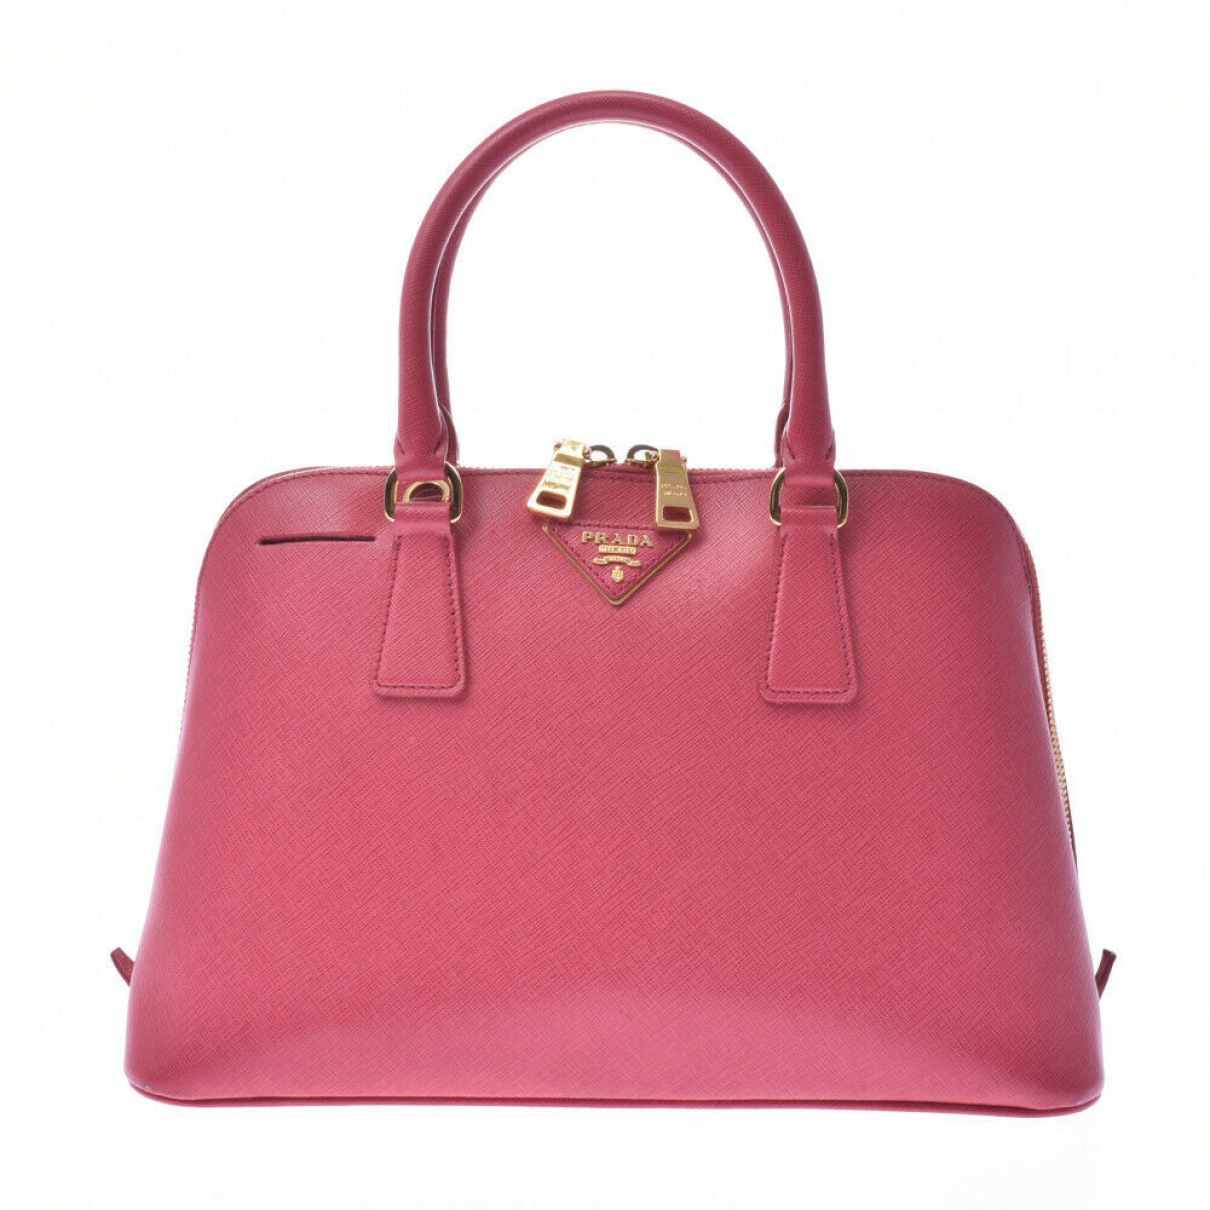 Prada Promenade Pink Leather handbag for Women \N